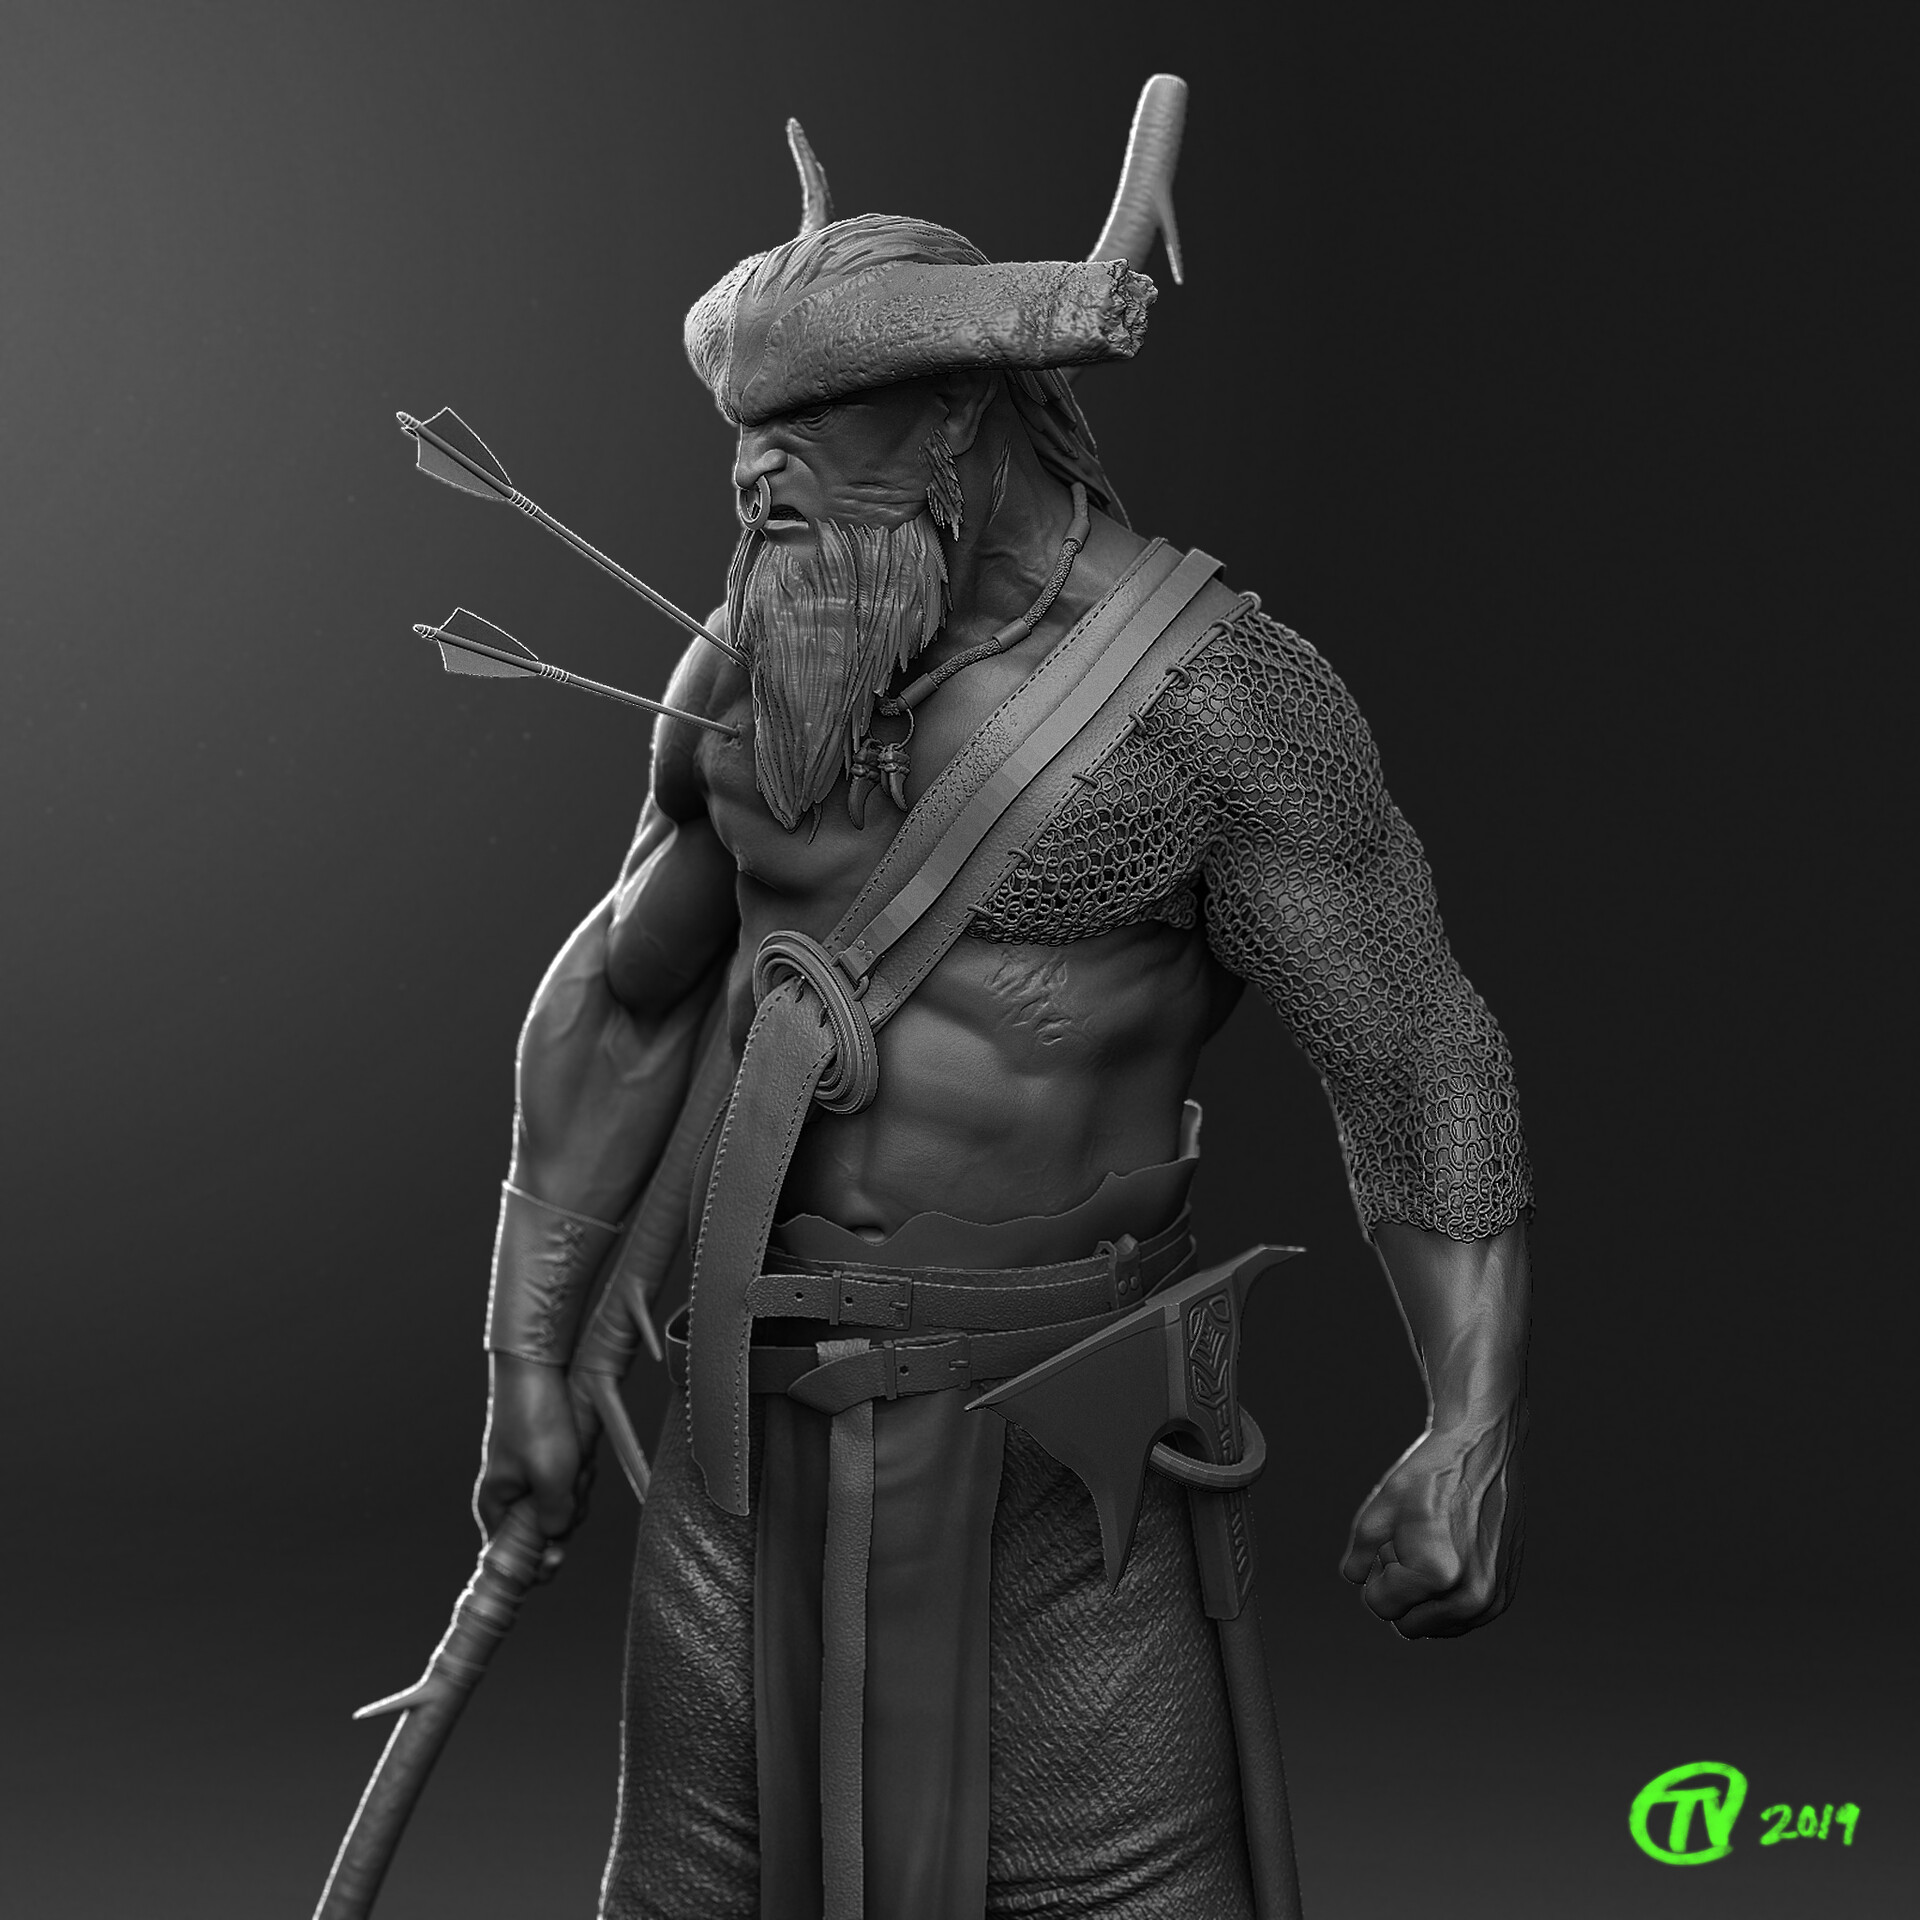 First Round sculpt and render